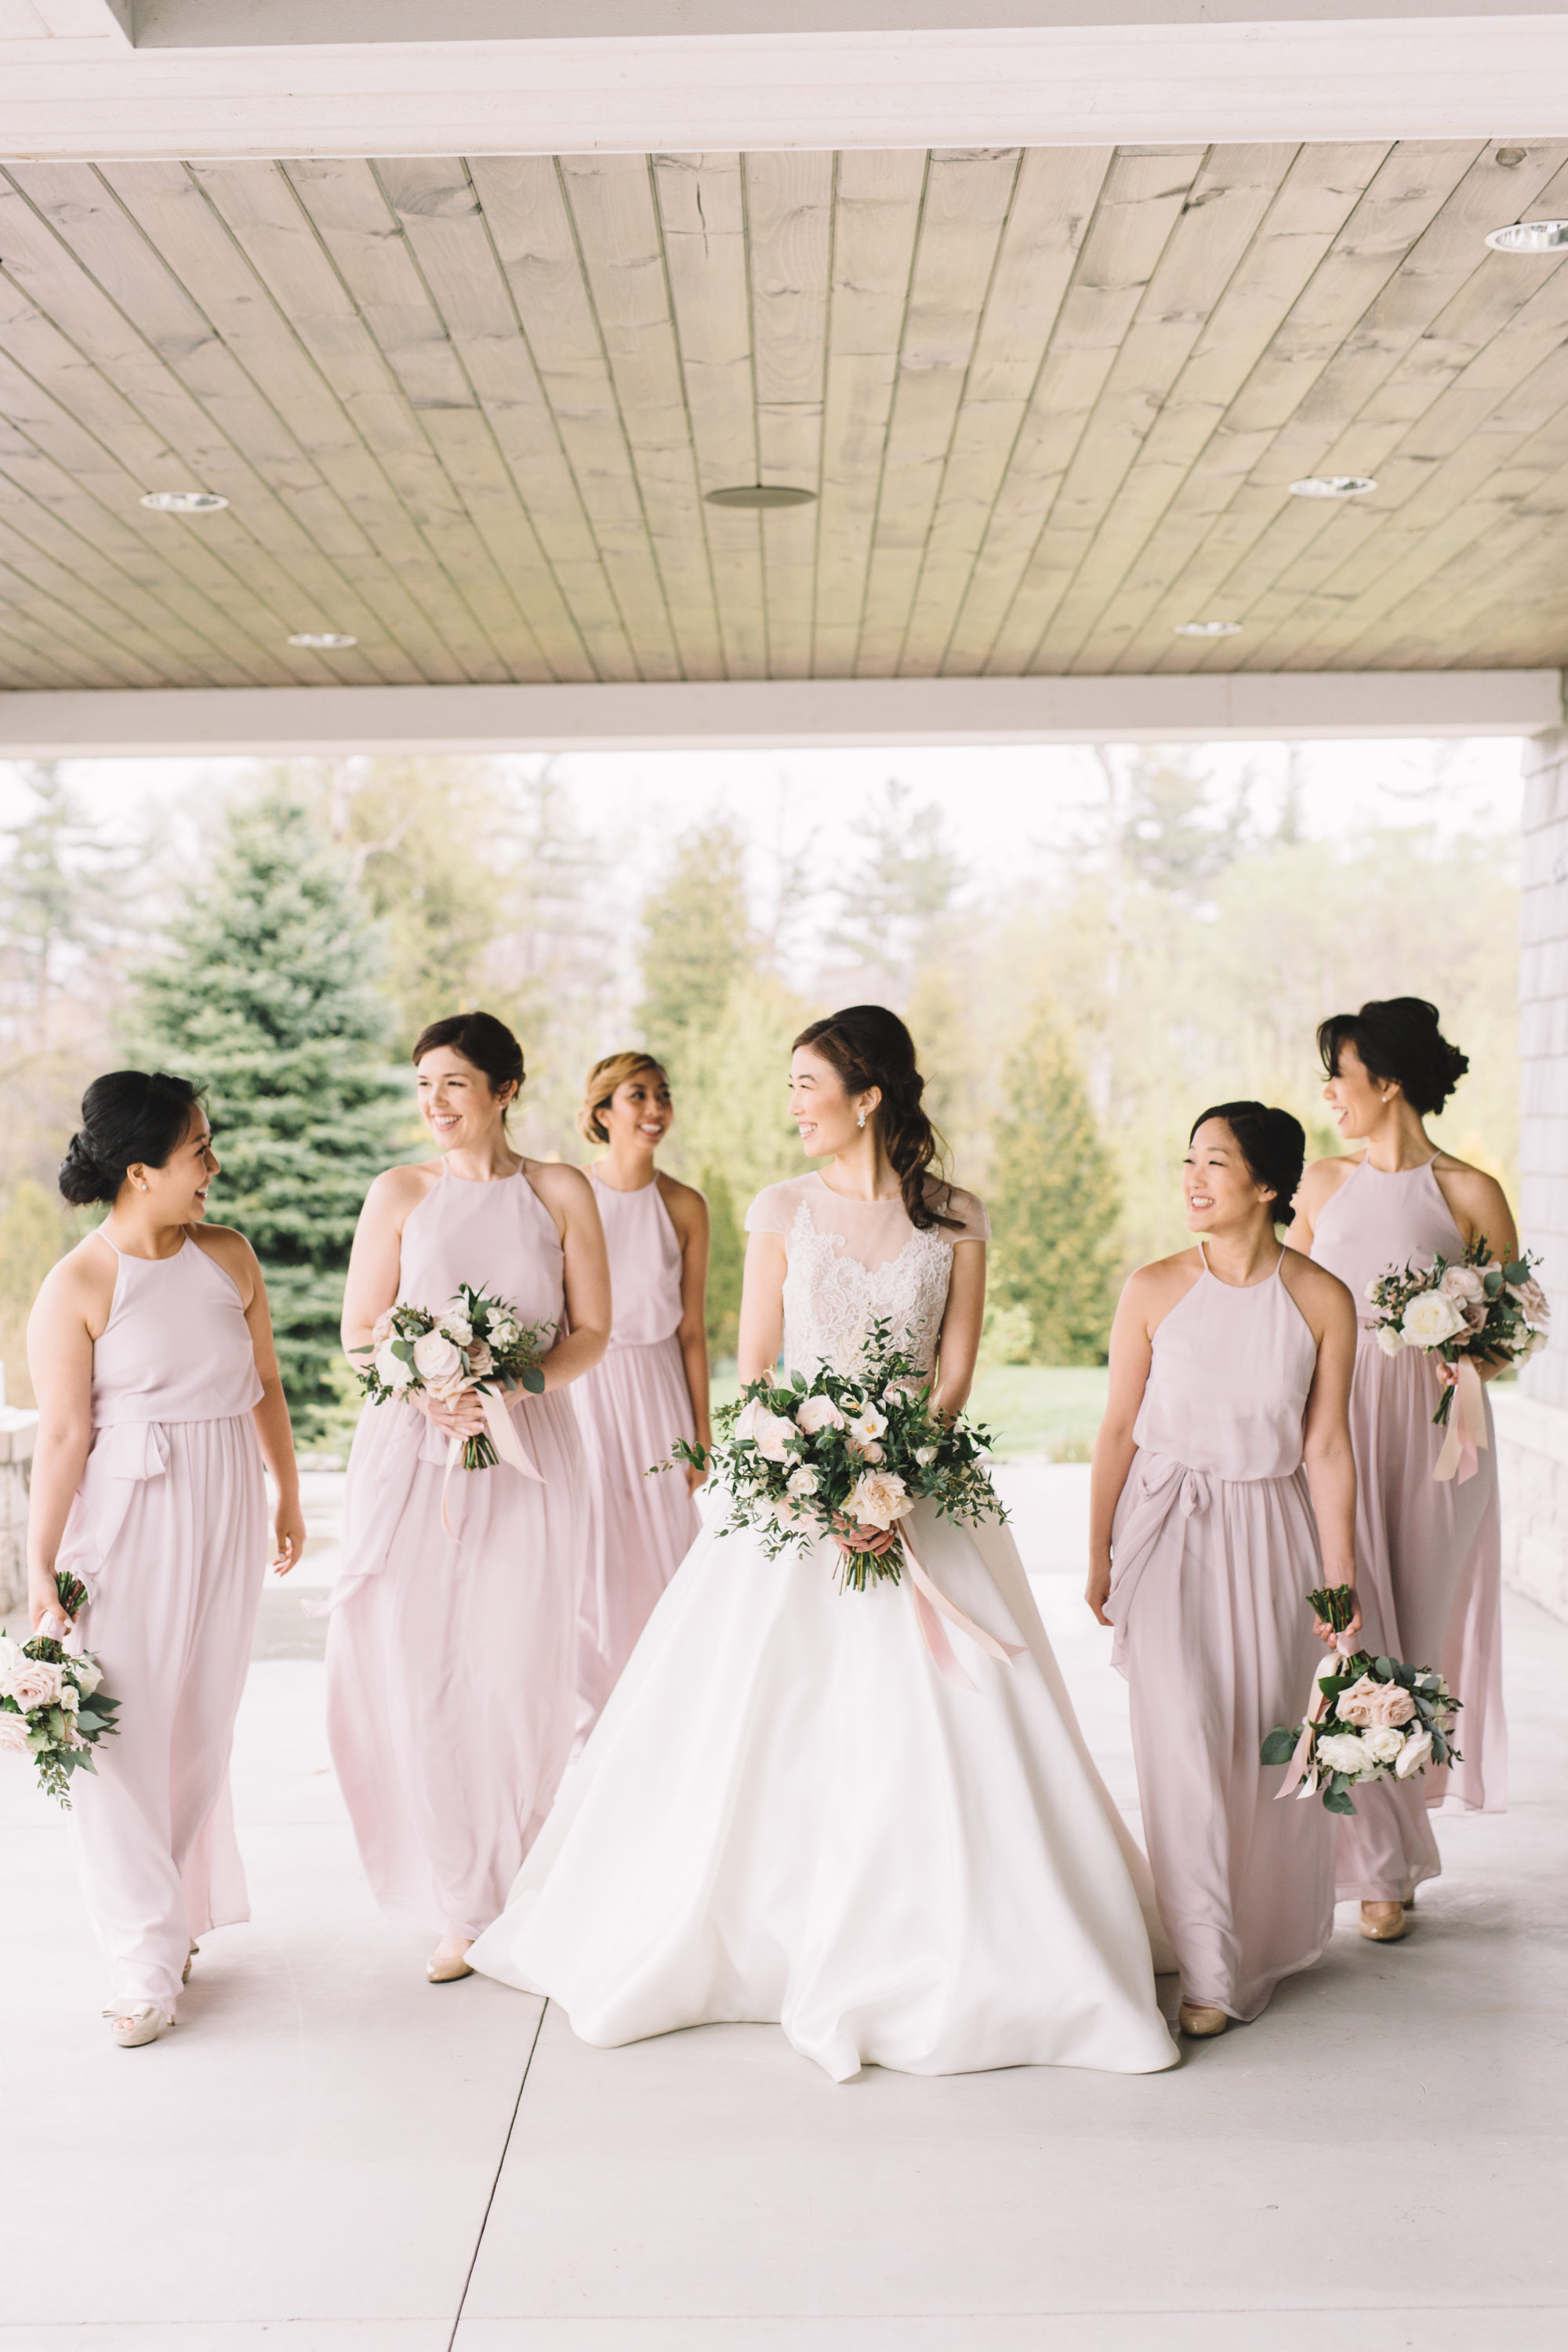 Bride walking with Bridesmaids at Whistle Bear Golf Club